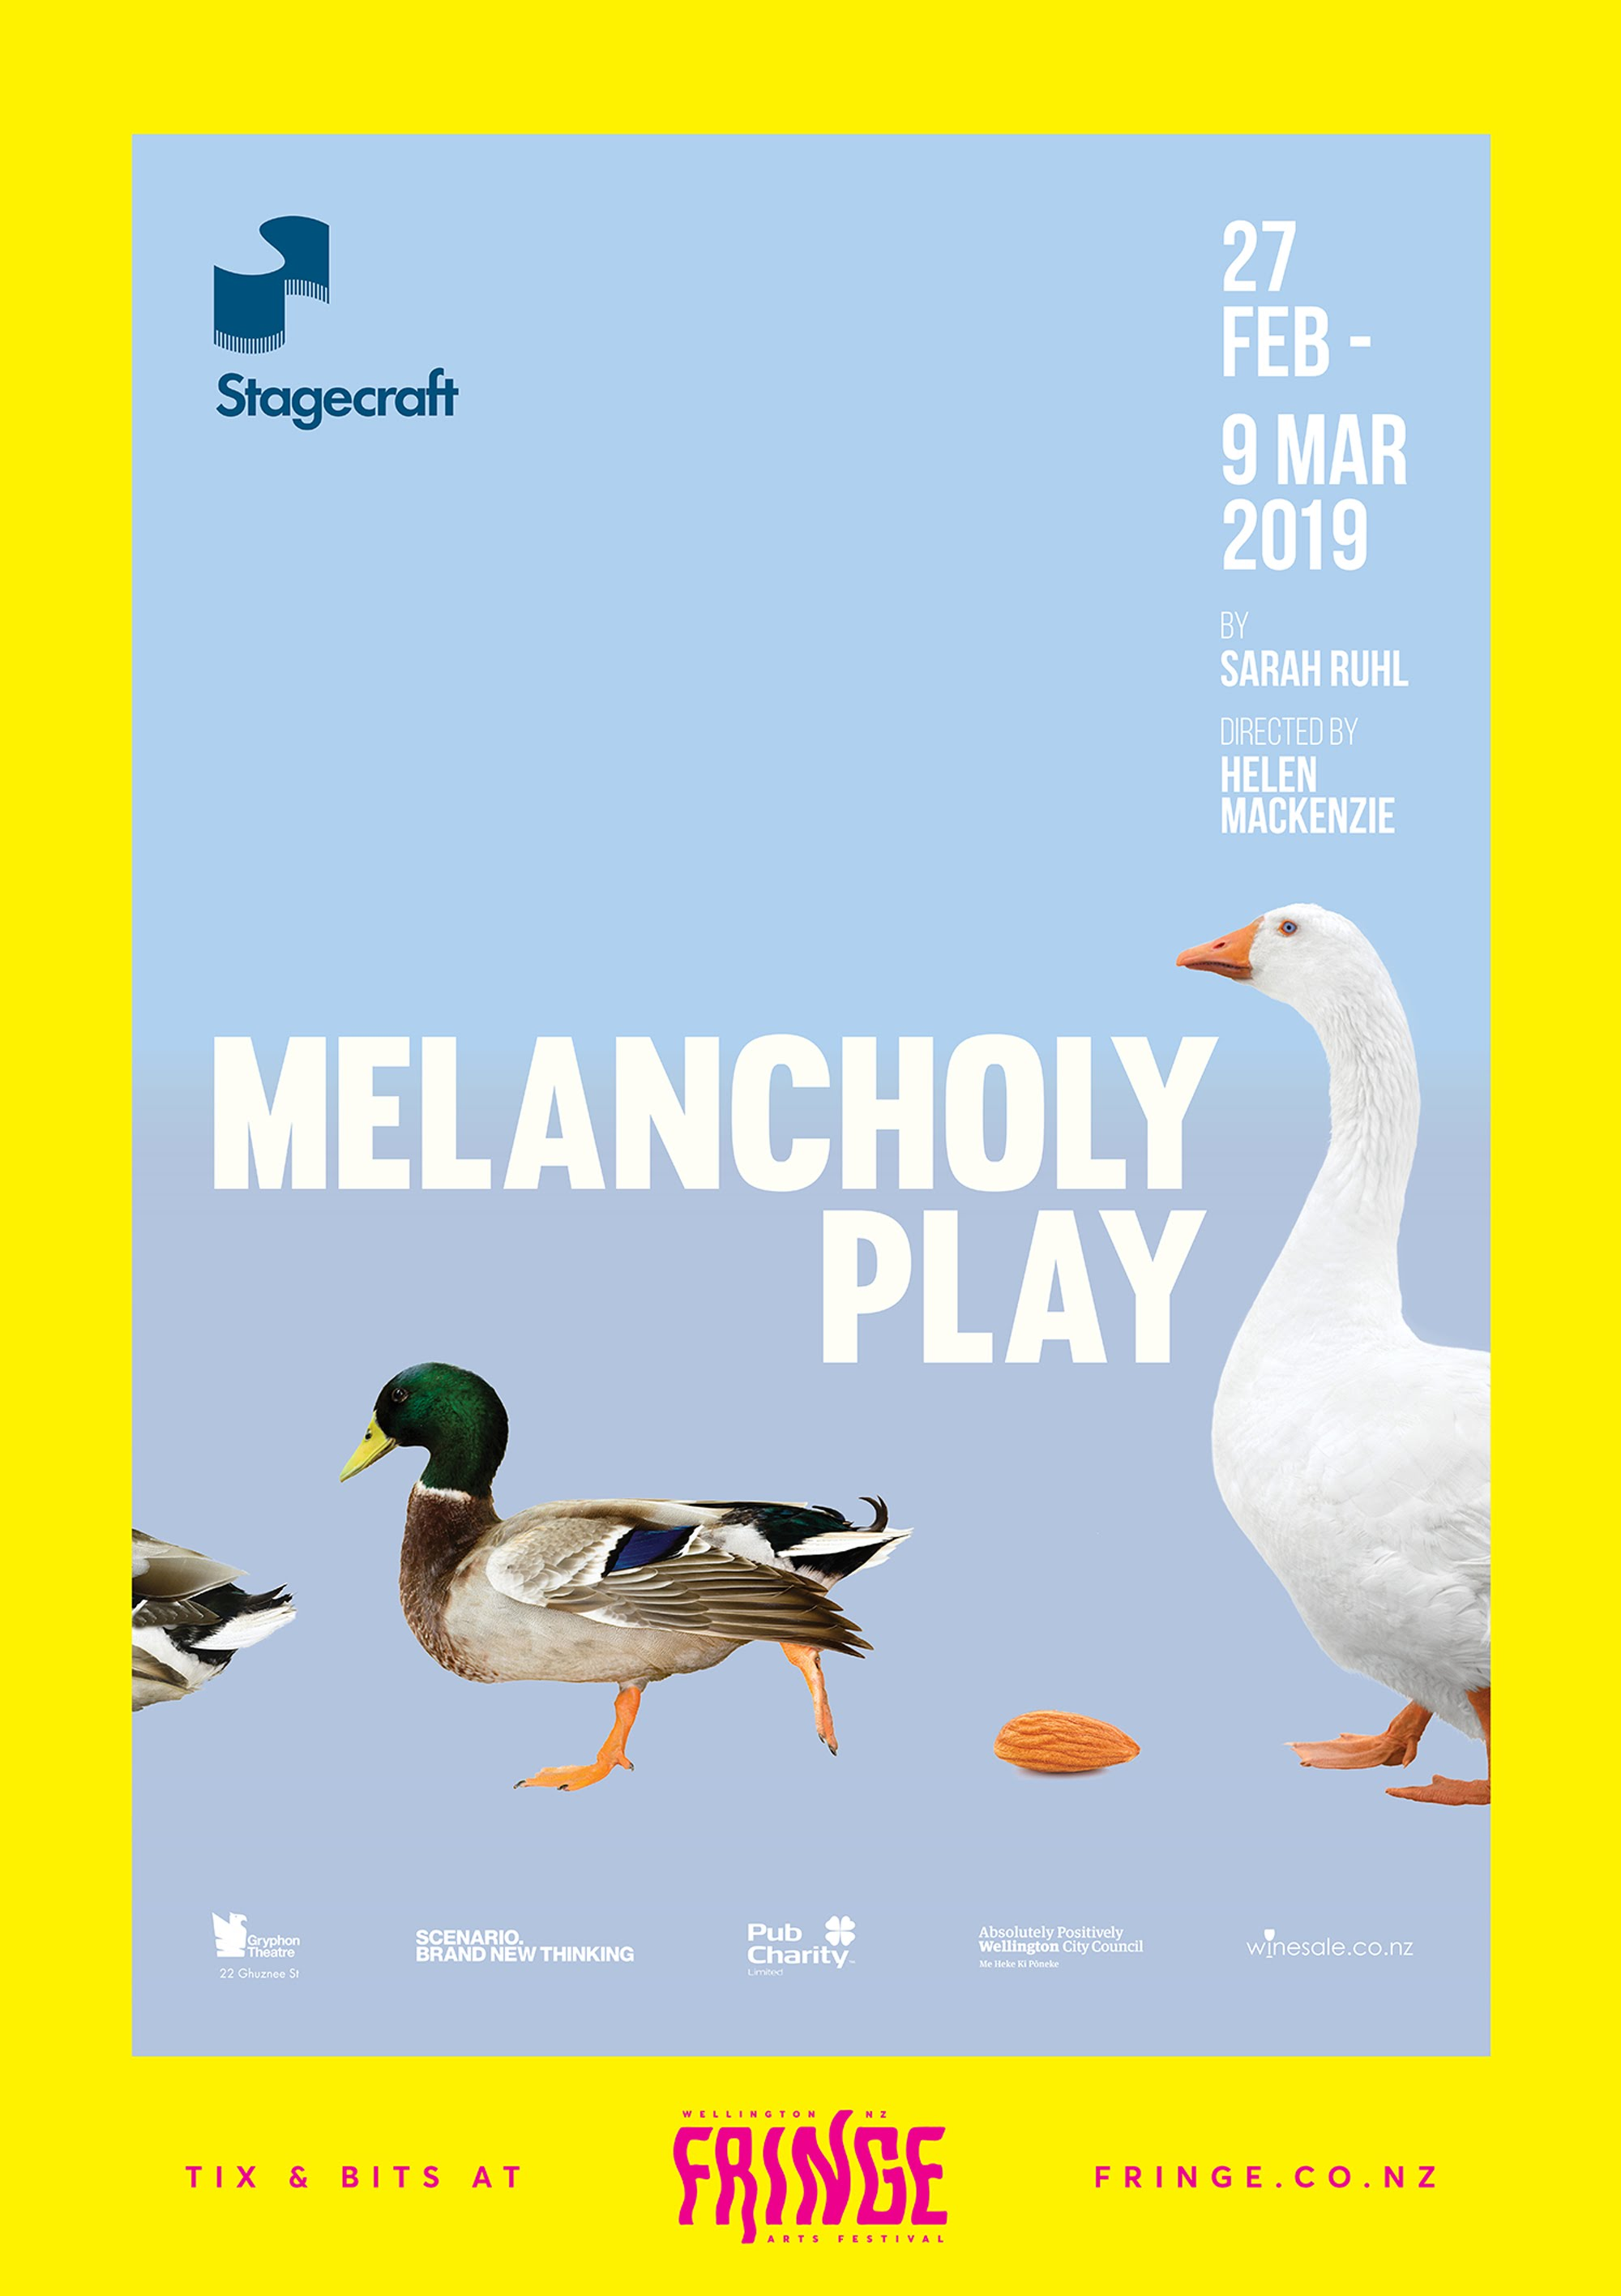 Image of poster for Melancholy Play